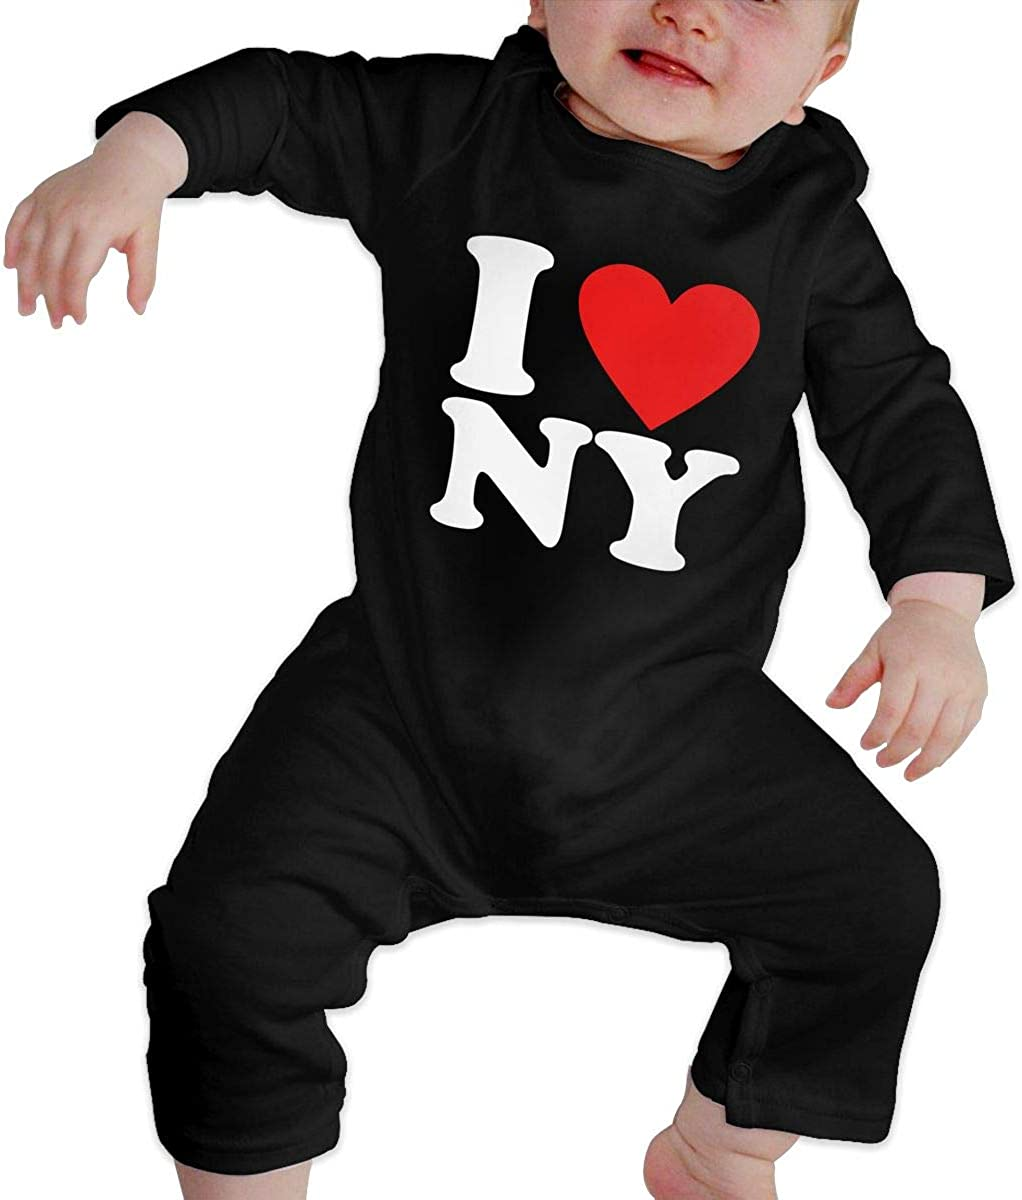 Unisex Baby Romper Jumpsuit I Love NY New York Organic One-Piece Bodysuits Coverall Outfits